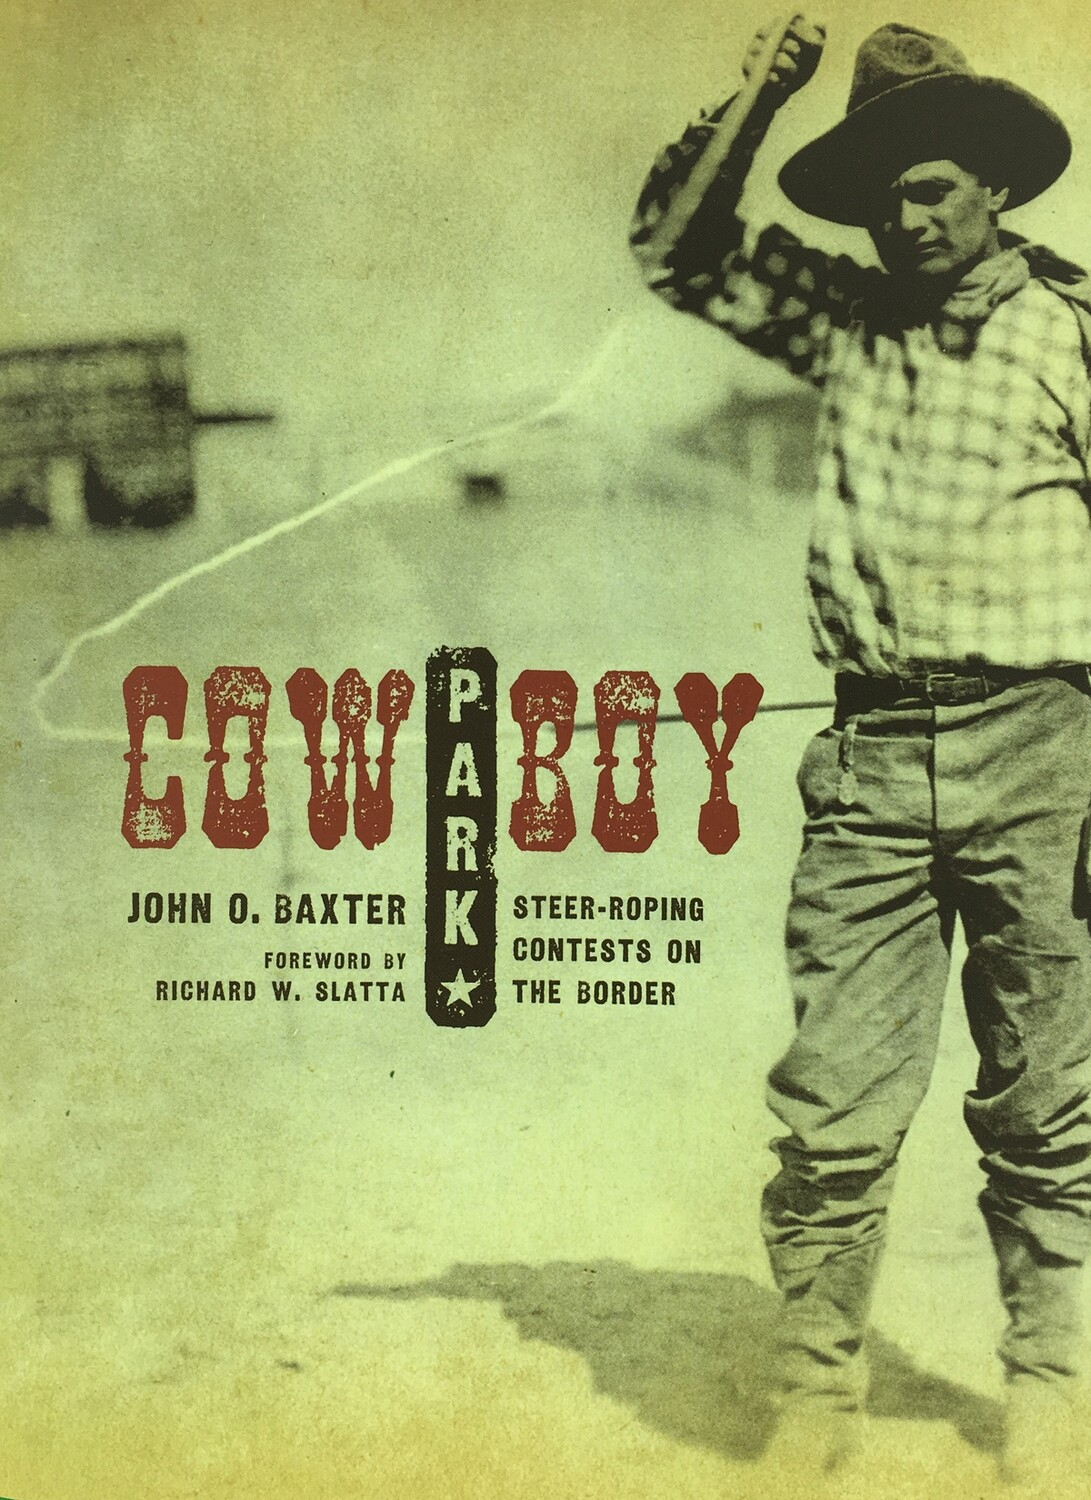 Cowboy Park: Steer Roping Contests on the Border